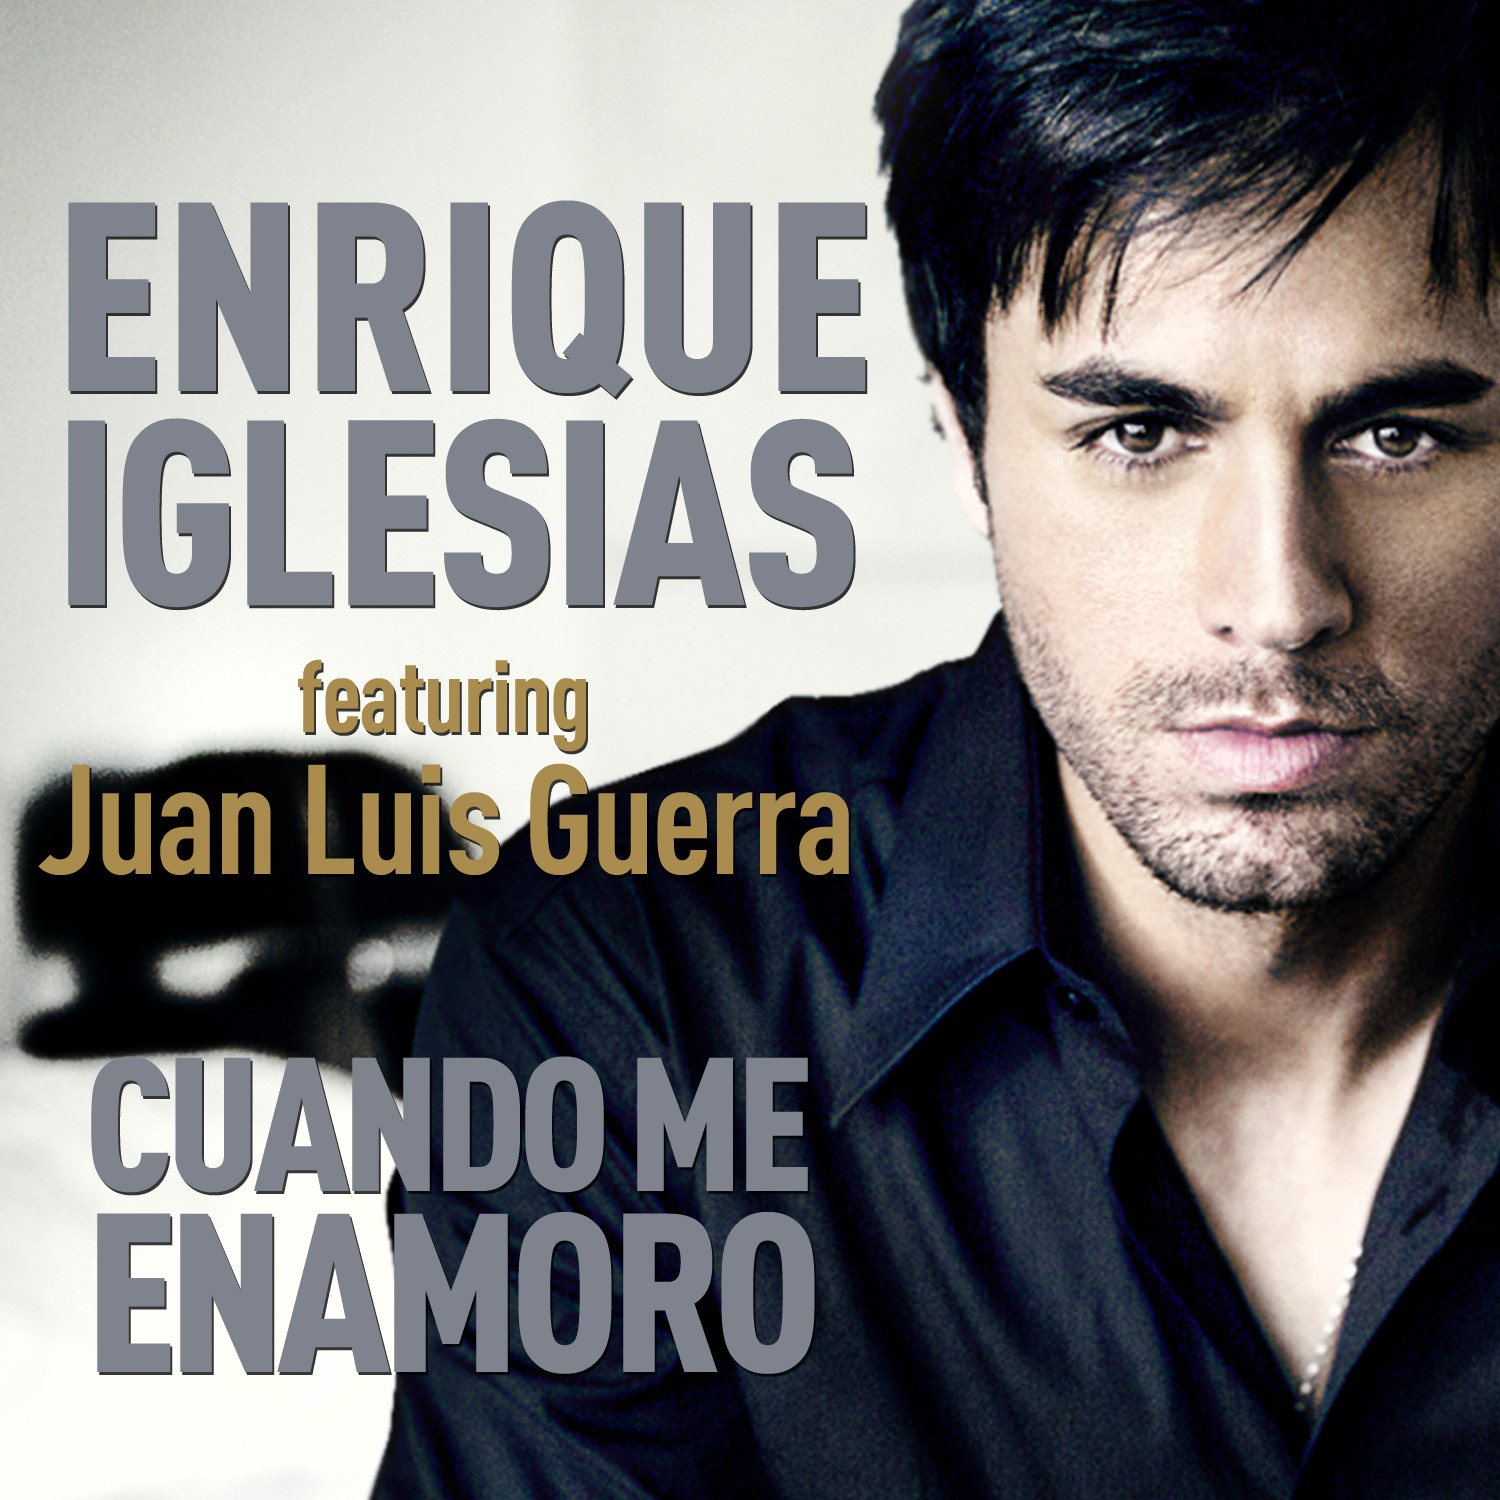 Enrique Iglesias MP3 descargar musica GRATIS